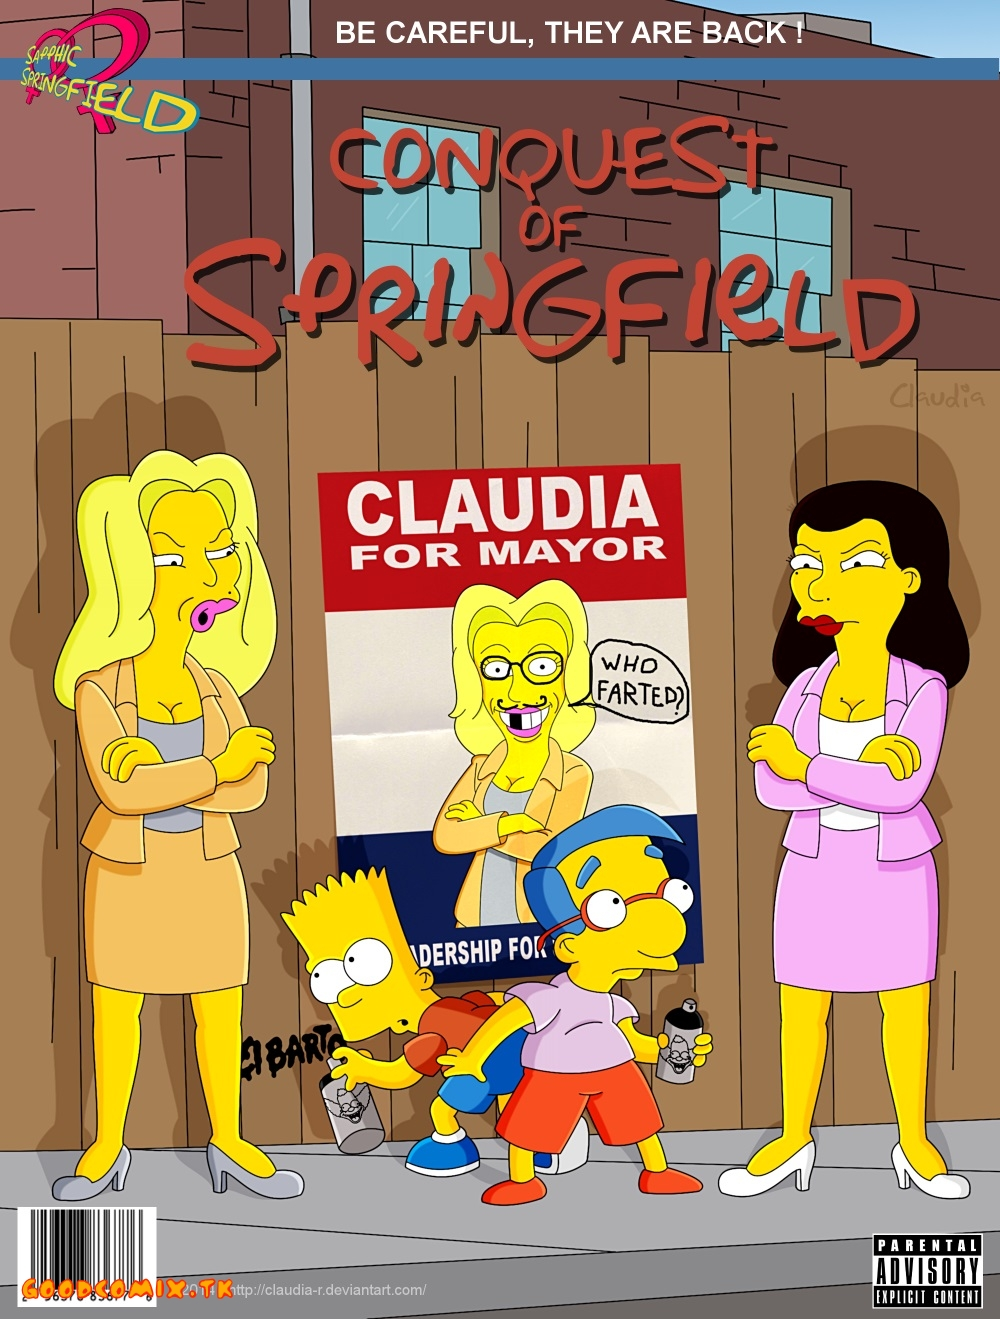 Goodcomix Simpsons - [Claudia-R(Riviera)] - 2 - Conquest Of Springfield